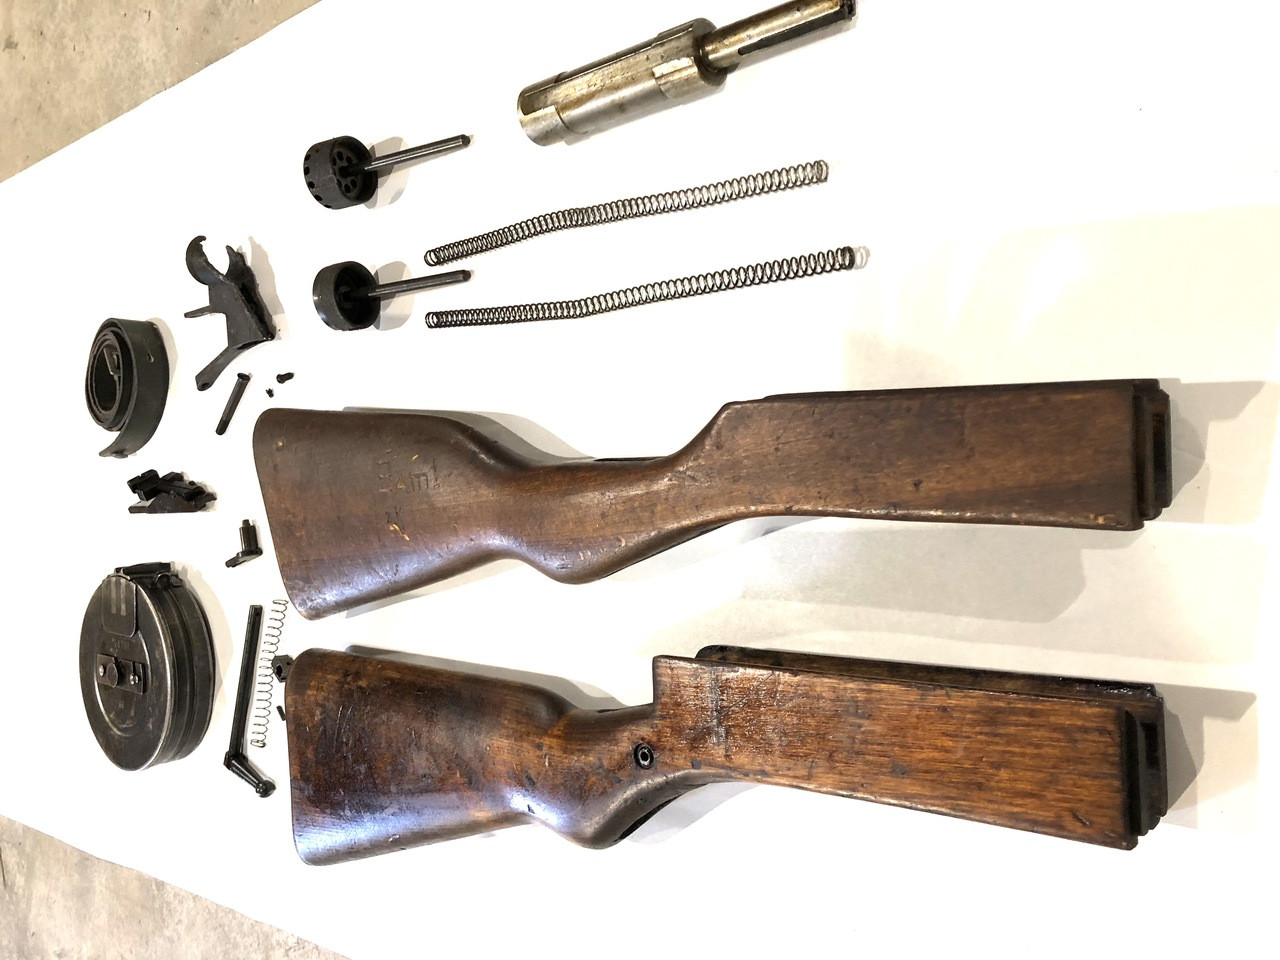 Suomi KP31 / Swed M37 Parts Lot